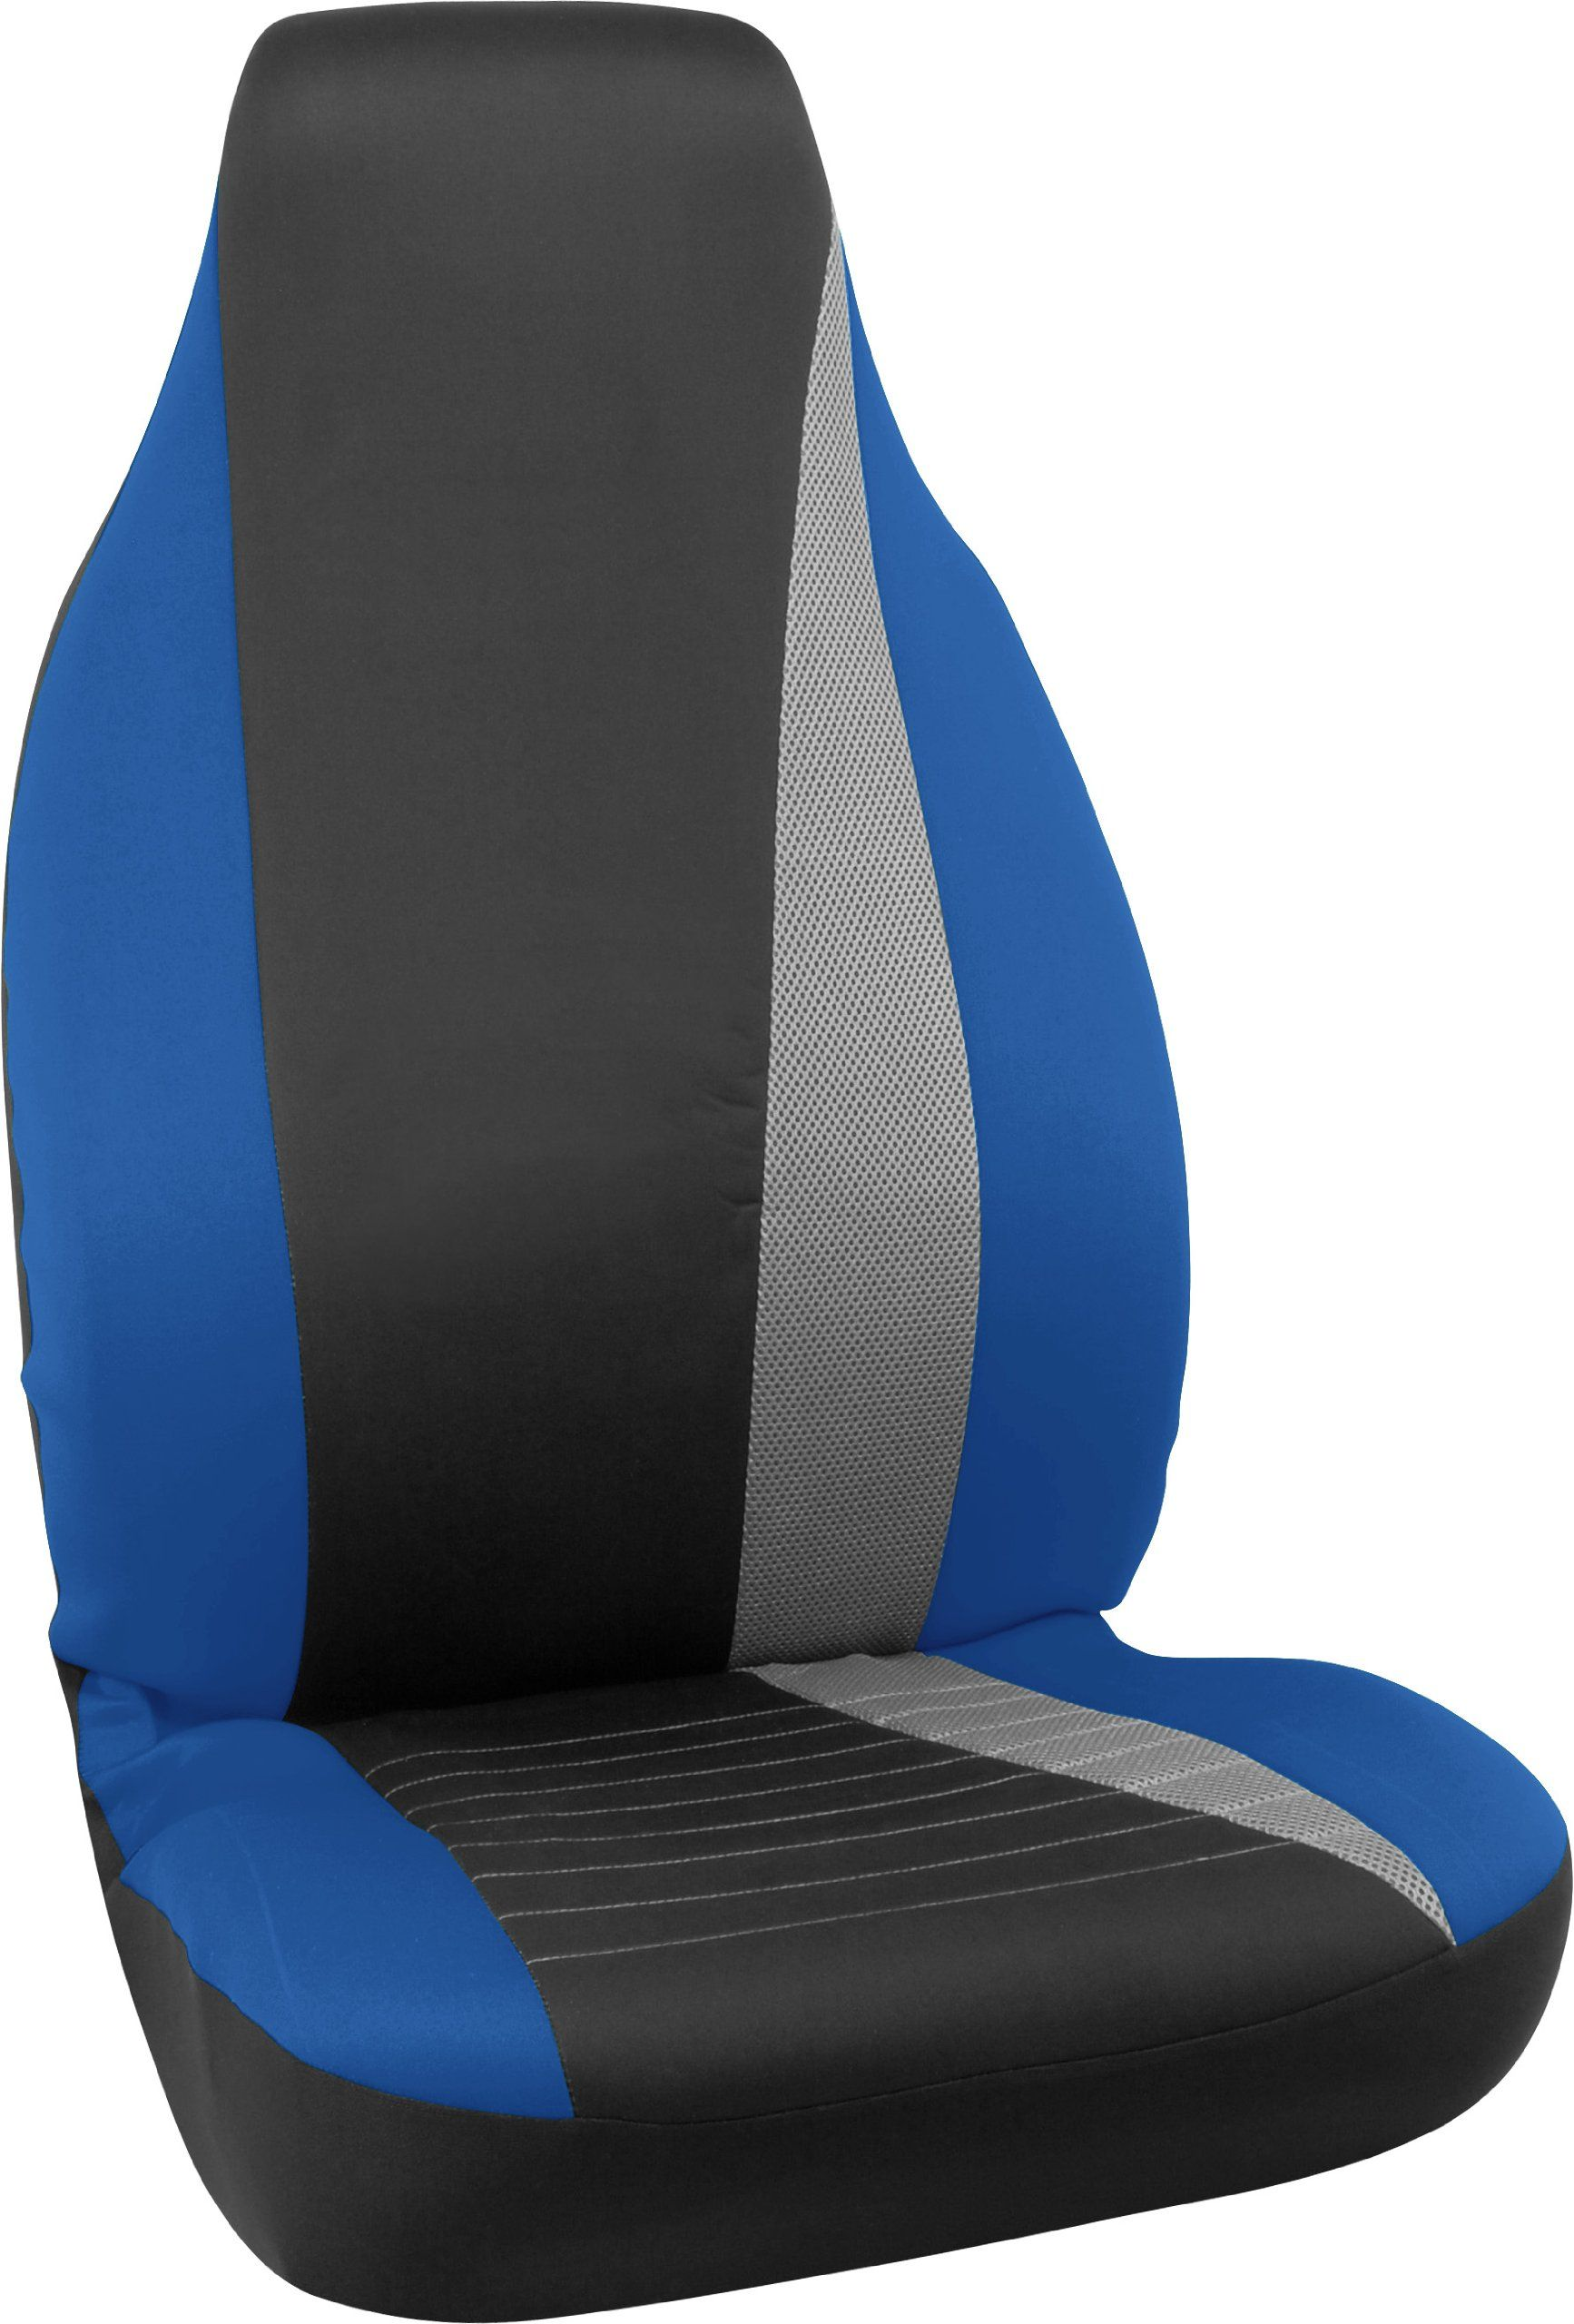 Bell Automotive 221568549 Blue Neoprene Universal